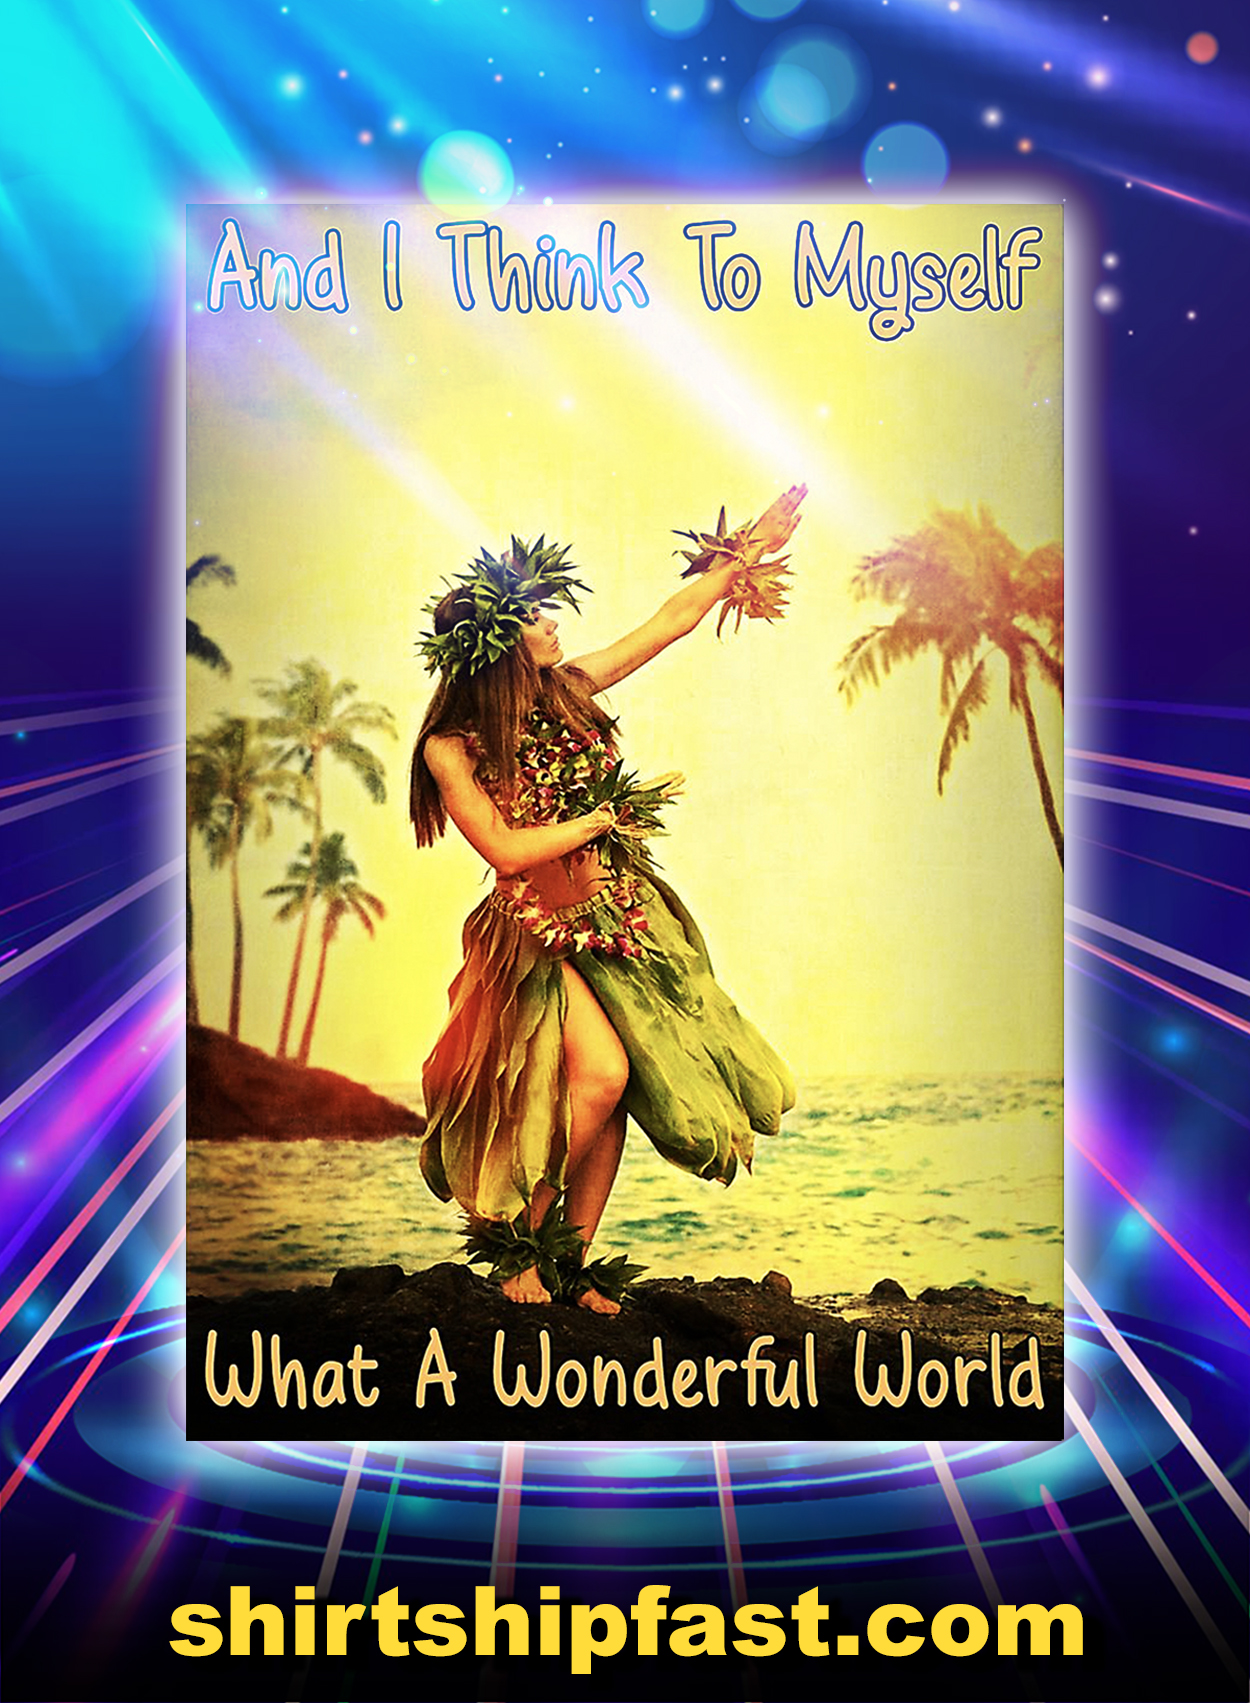 Hawaii girl and i think to myself what a wonderful world poster - A3